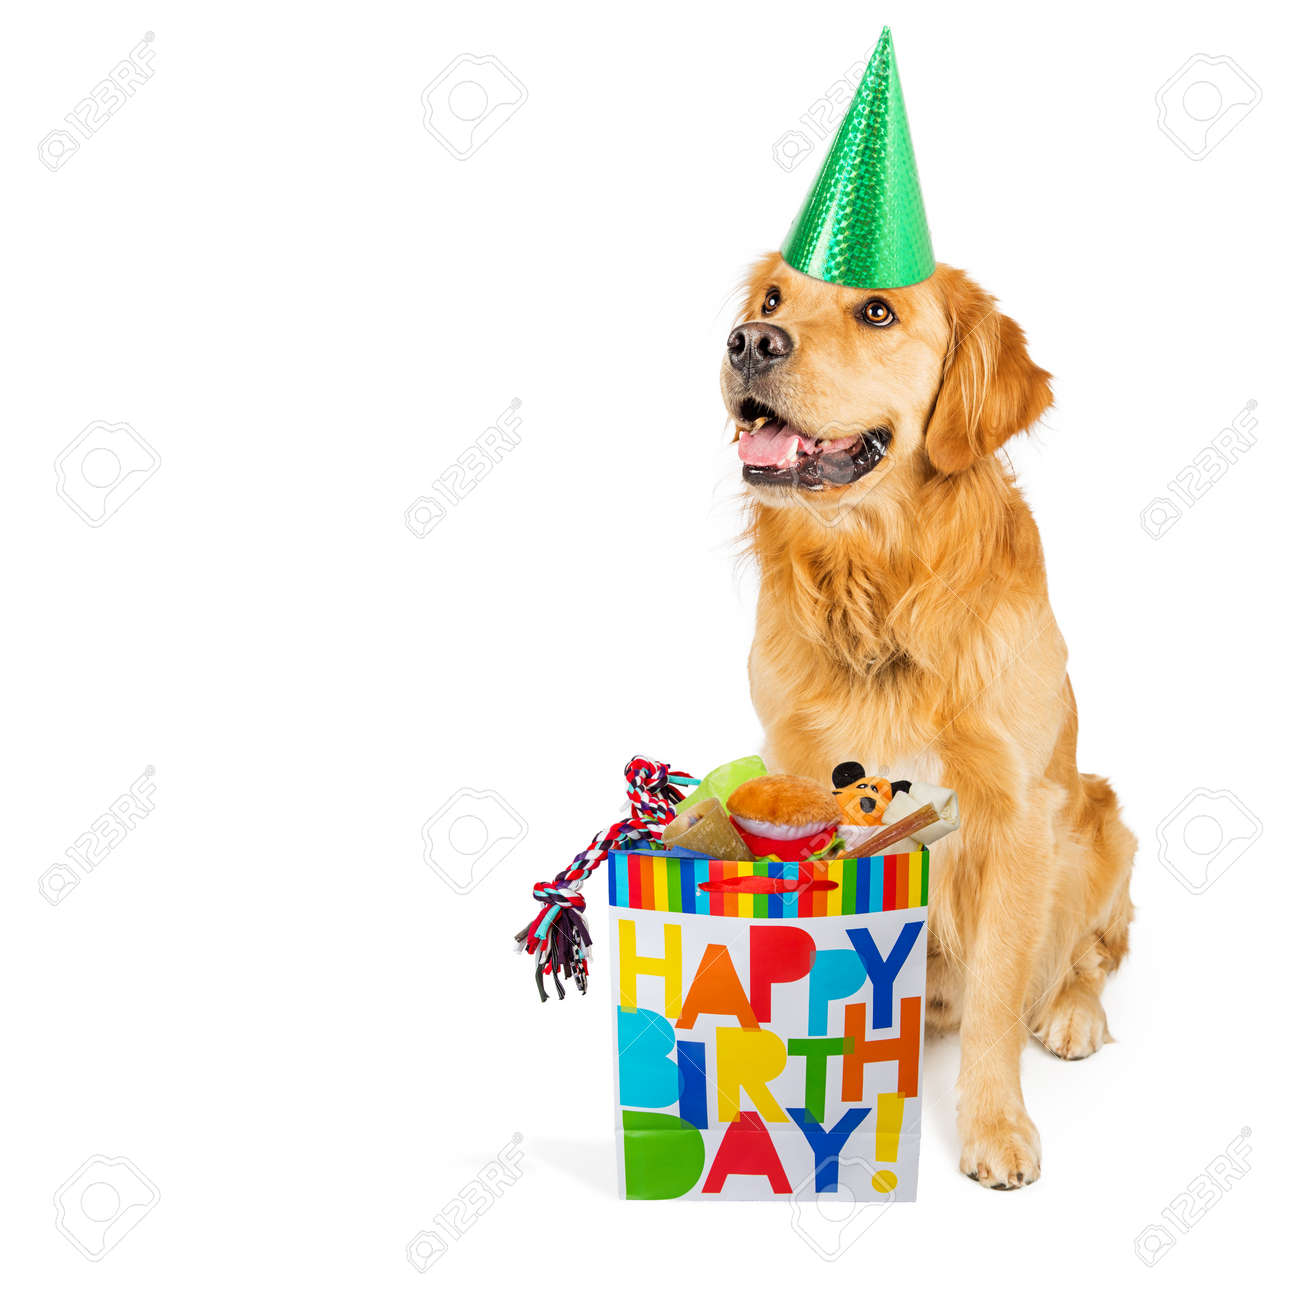 Happy Golden Retriever Dog Wearing A Party Hat With A Birthday